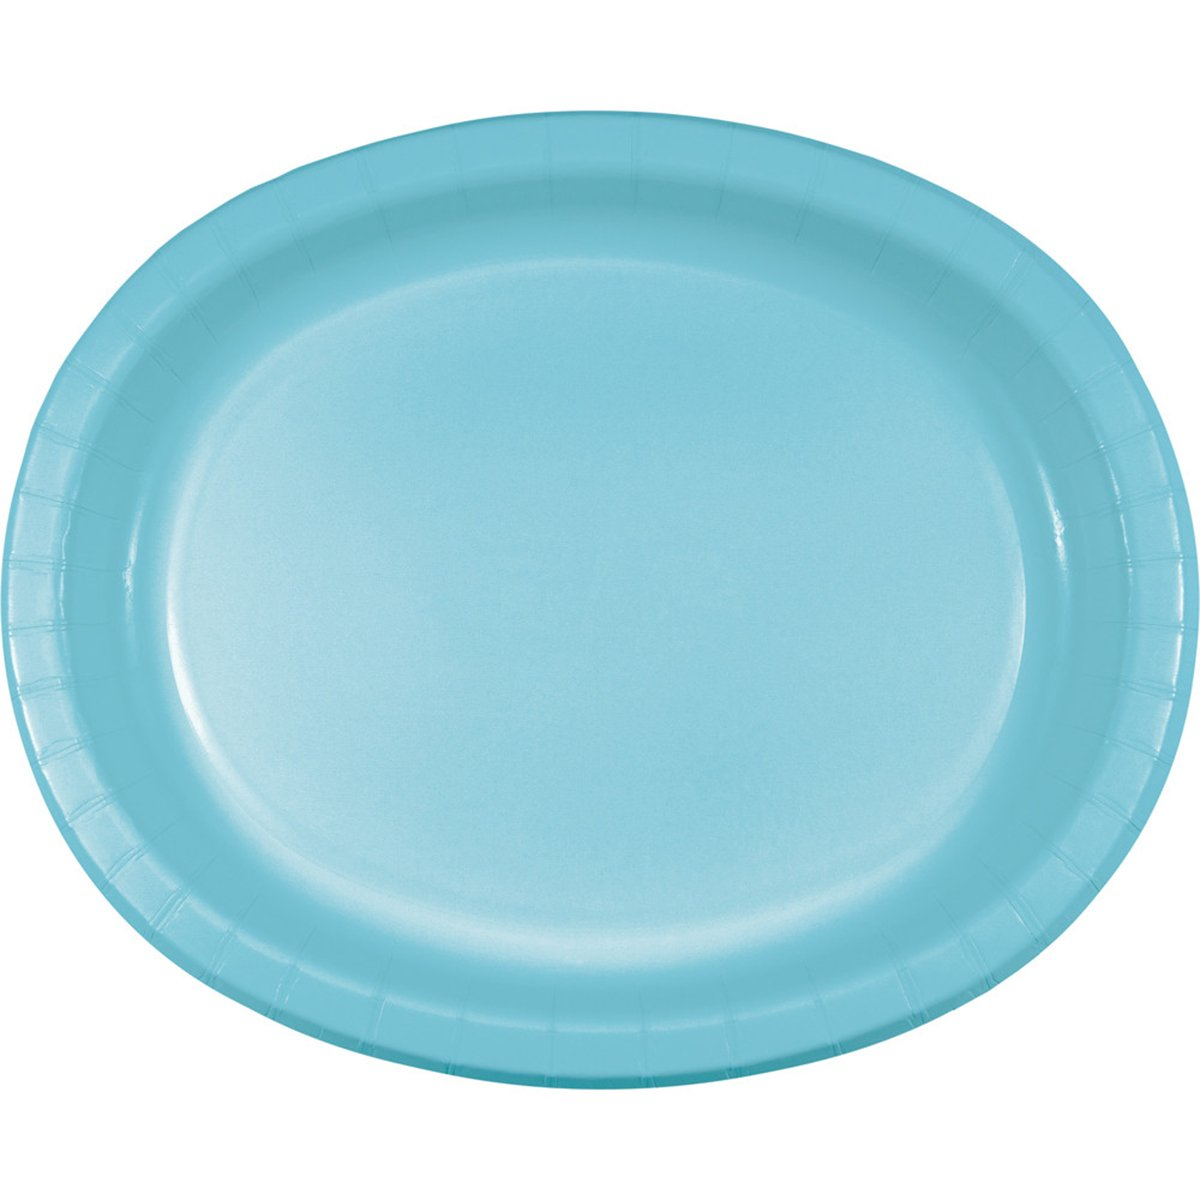 Creative Converting 433279 Oval Platter 10'' x 12'' Navy by Creative Converting (Image #1)